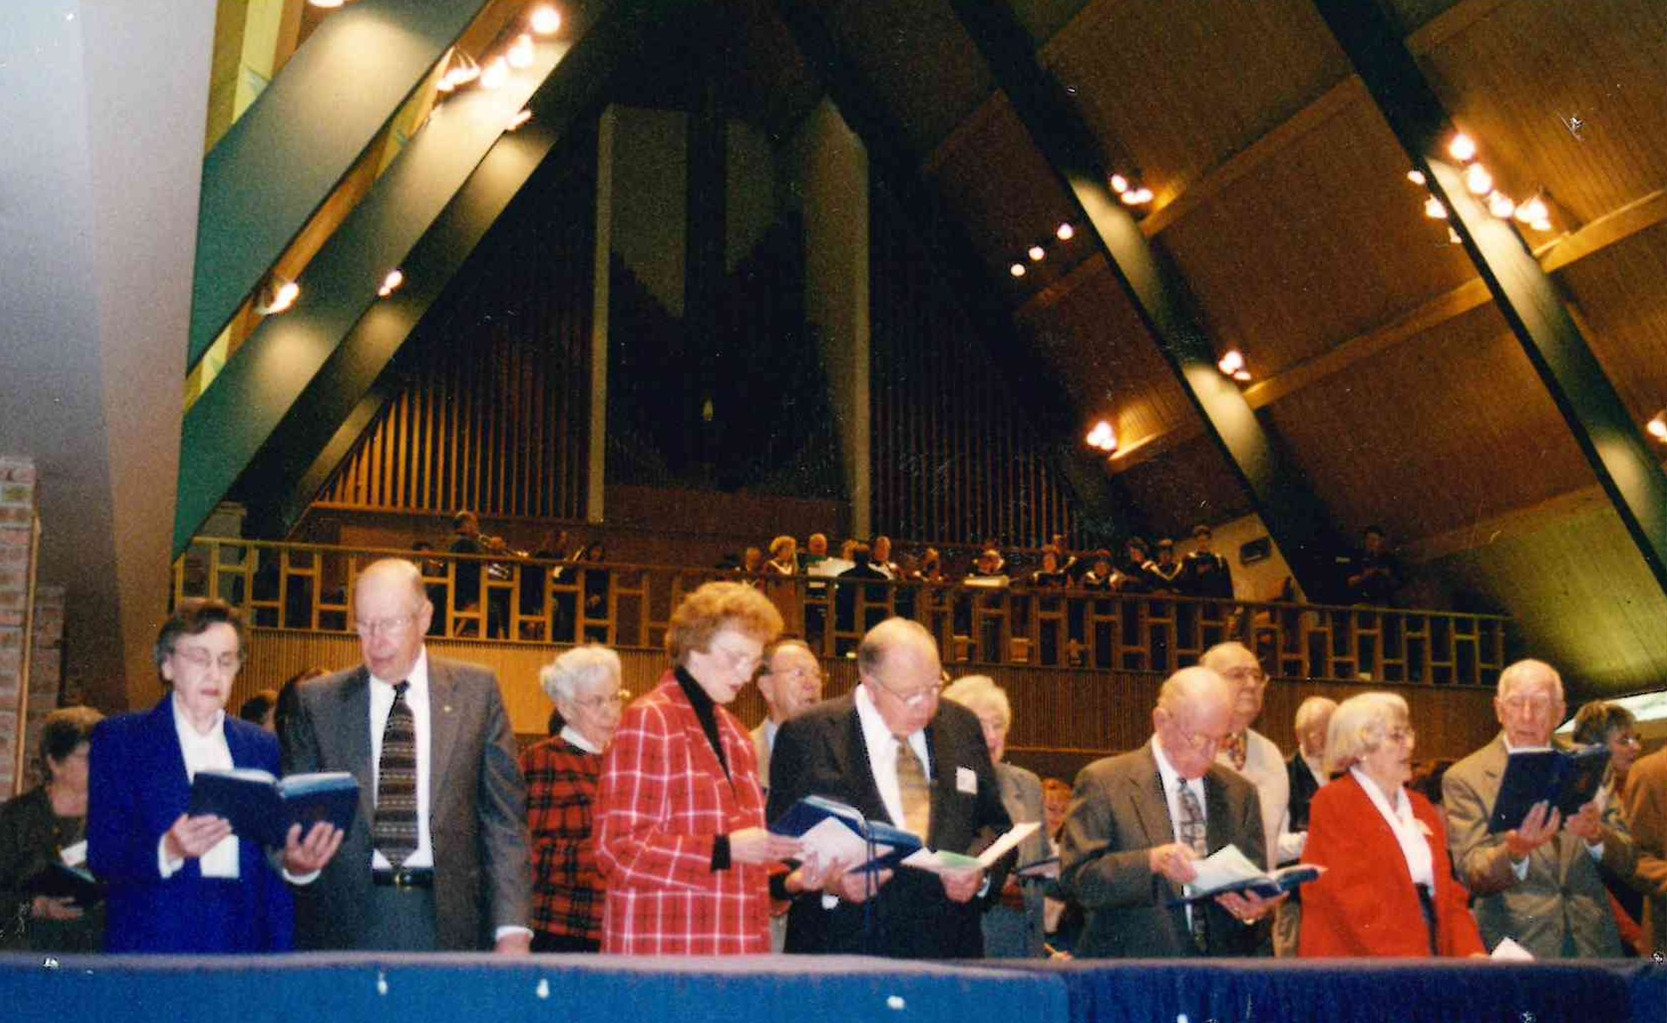 An historical photograph of the interior of First Presbyterian Church, Sioux Falls, showcasing the mid-century sensibilities of the building designed by Spitznagel Architecture.